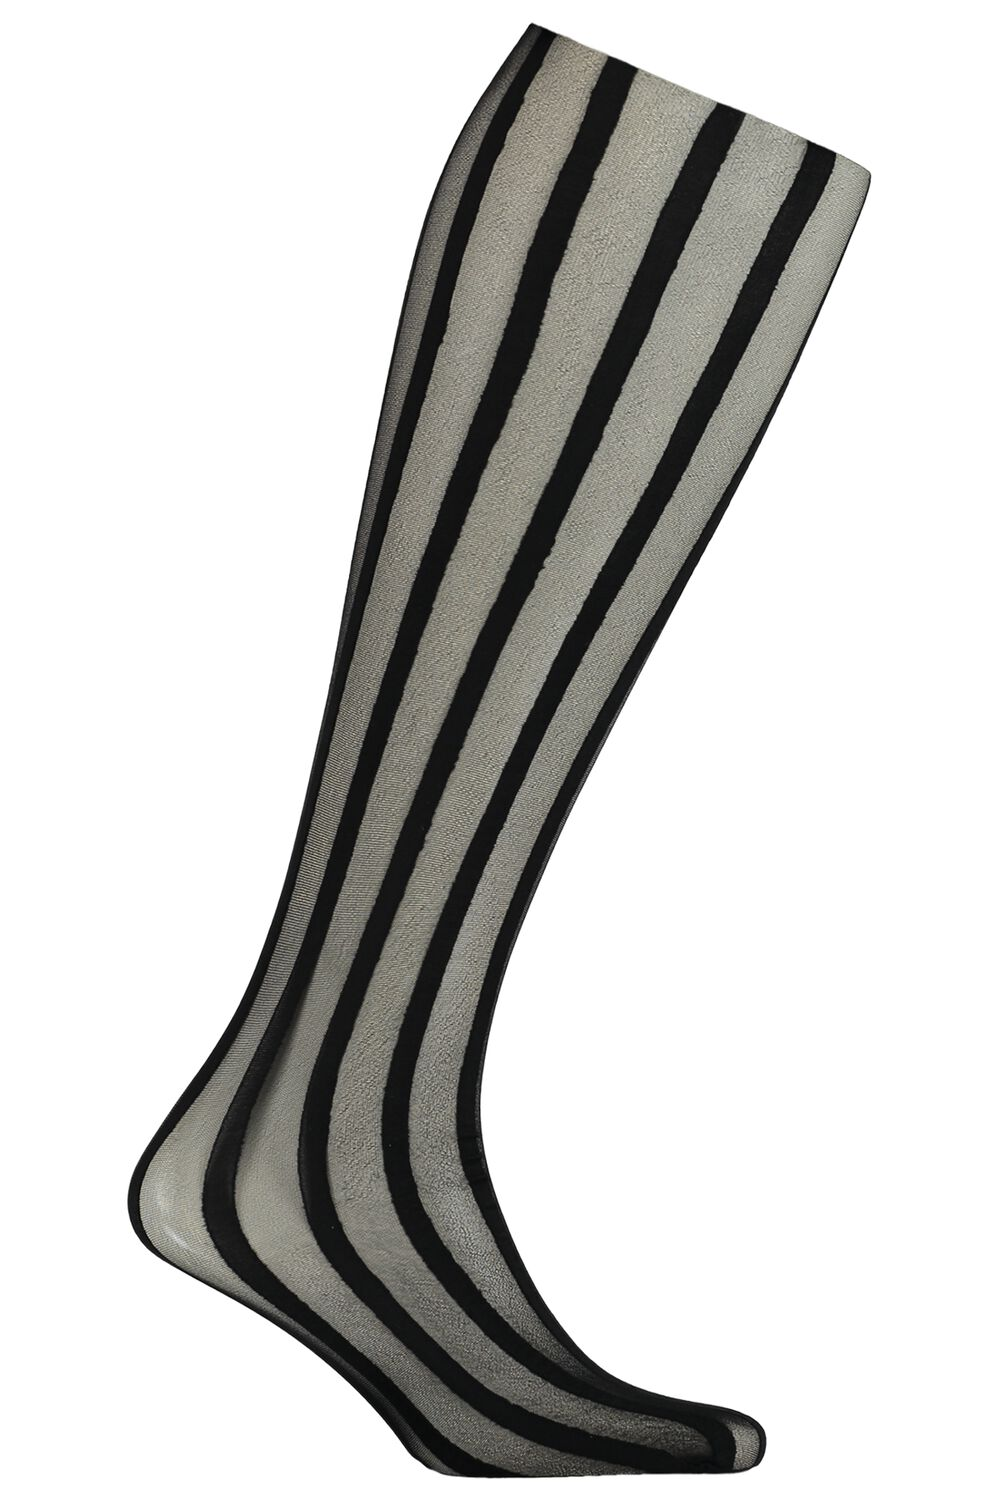 America Today Dames Panty Tights Multicolour